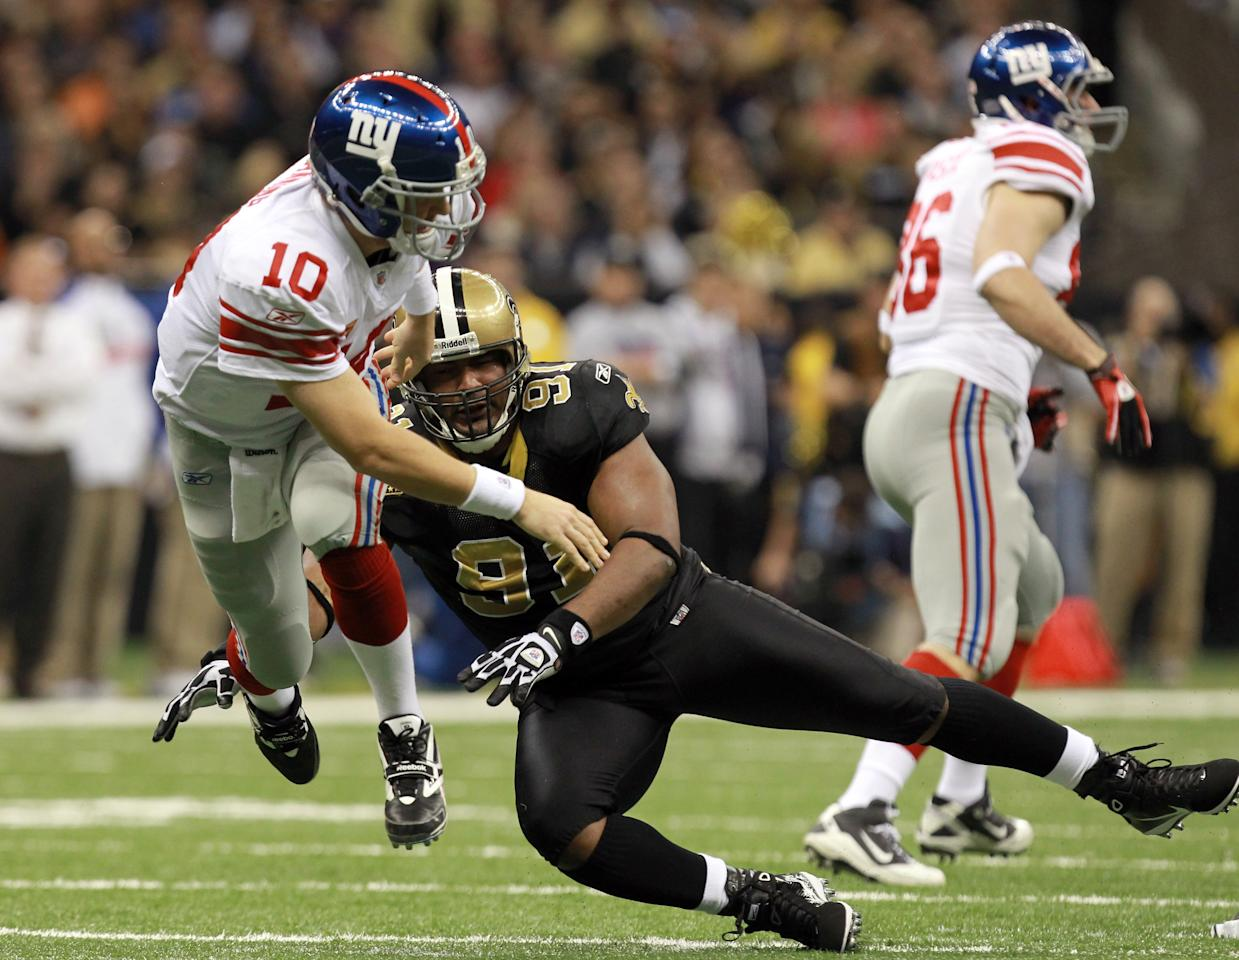 NEW ORLEANS, LA - NOVEMBER 28:  Quarterback Eli Manning #10 of the New York Giants throws the ball as he is hit by Will Smith #91 of the New Orleans Saints in the first half at Mercedes-Benz Superdome on November 28, 2011 in New Orleans, Louisiana.  (Photo by Ronald Martinez/Getty Images)